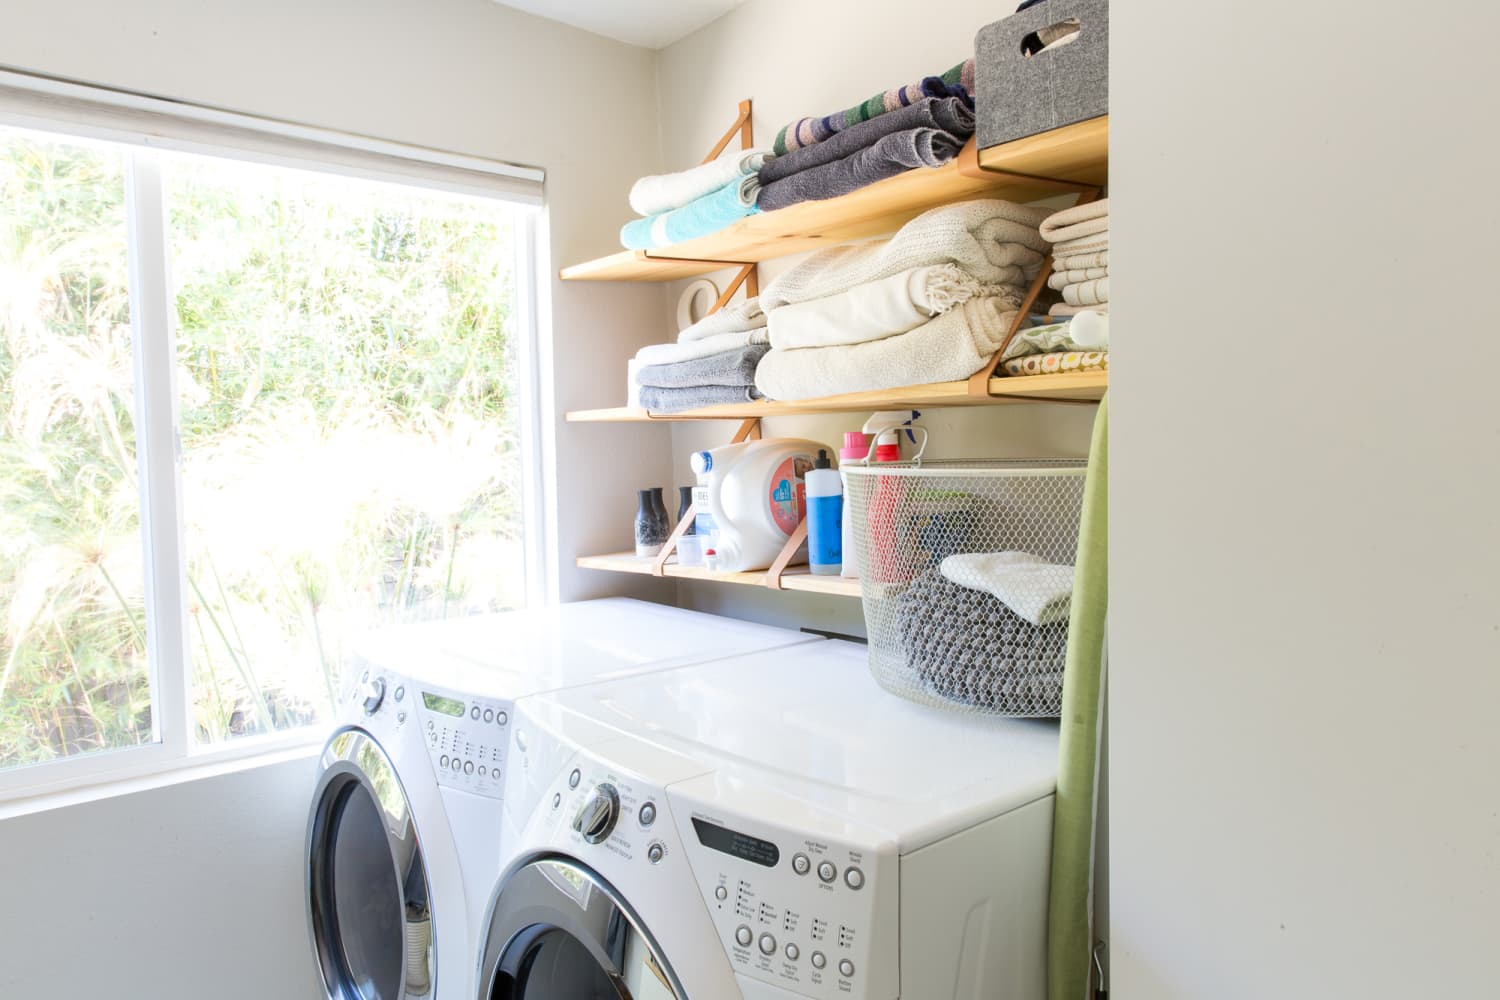 These 6 Hacks Make Laundry Day Much Less of a Chore